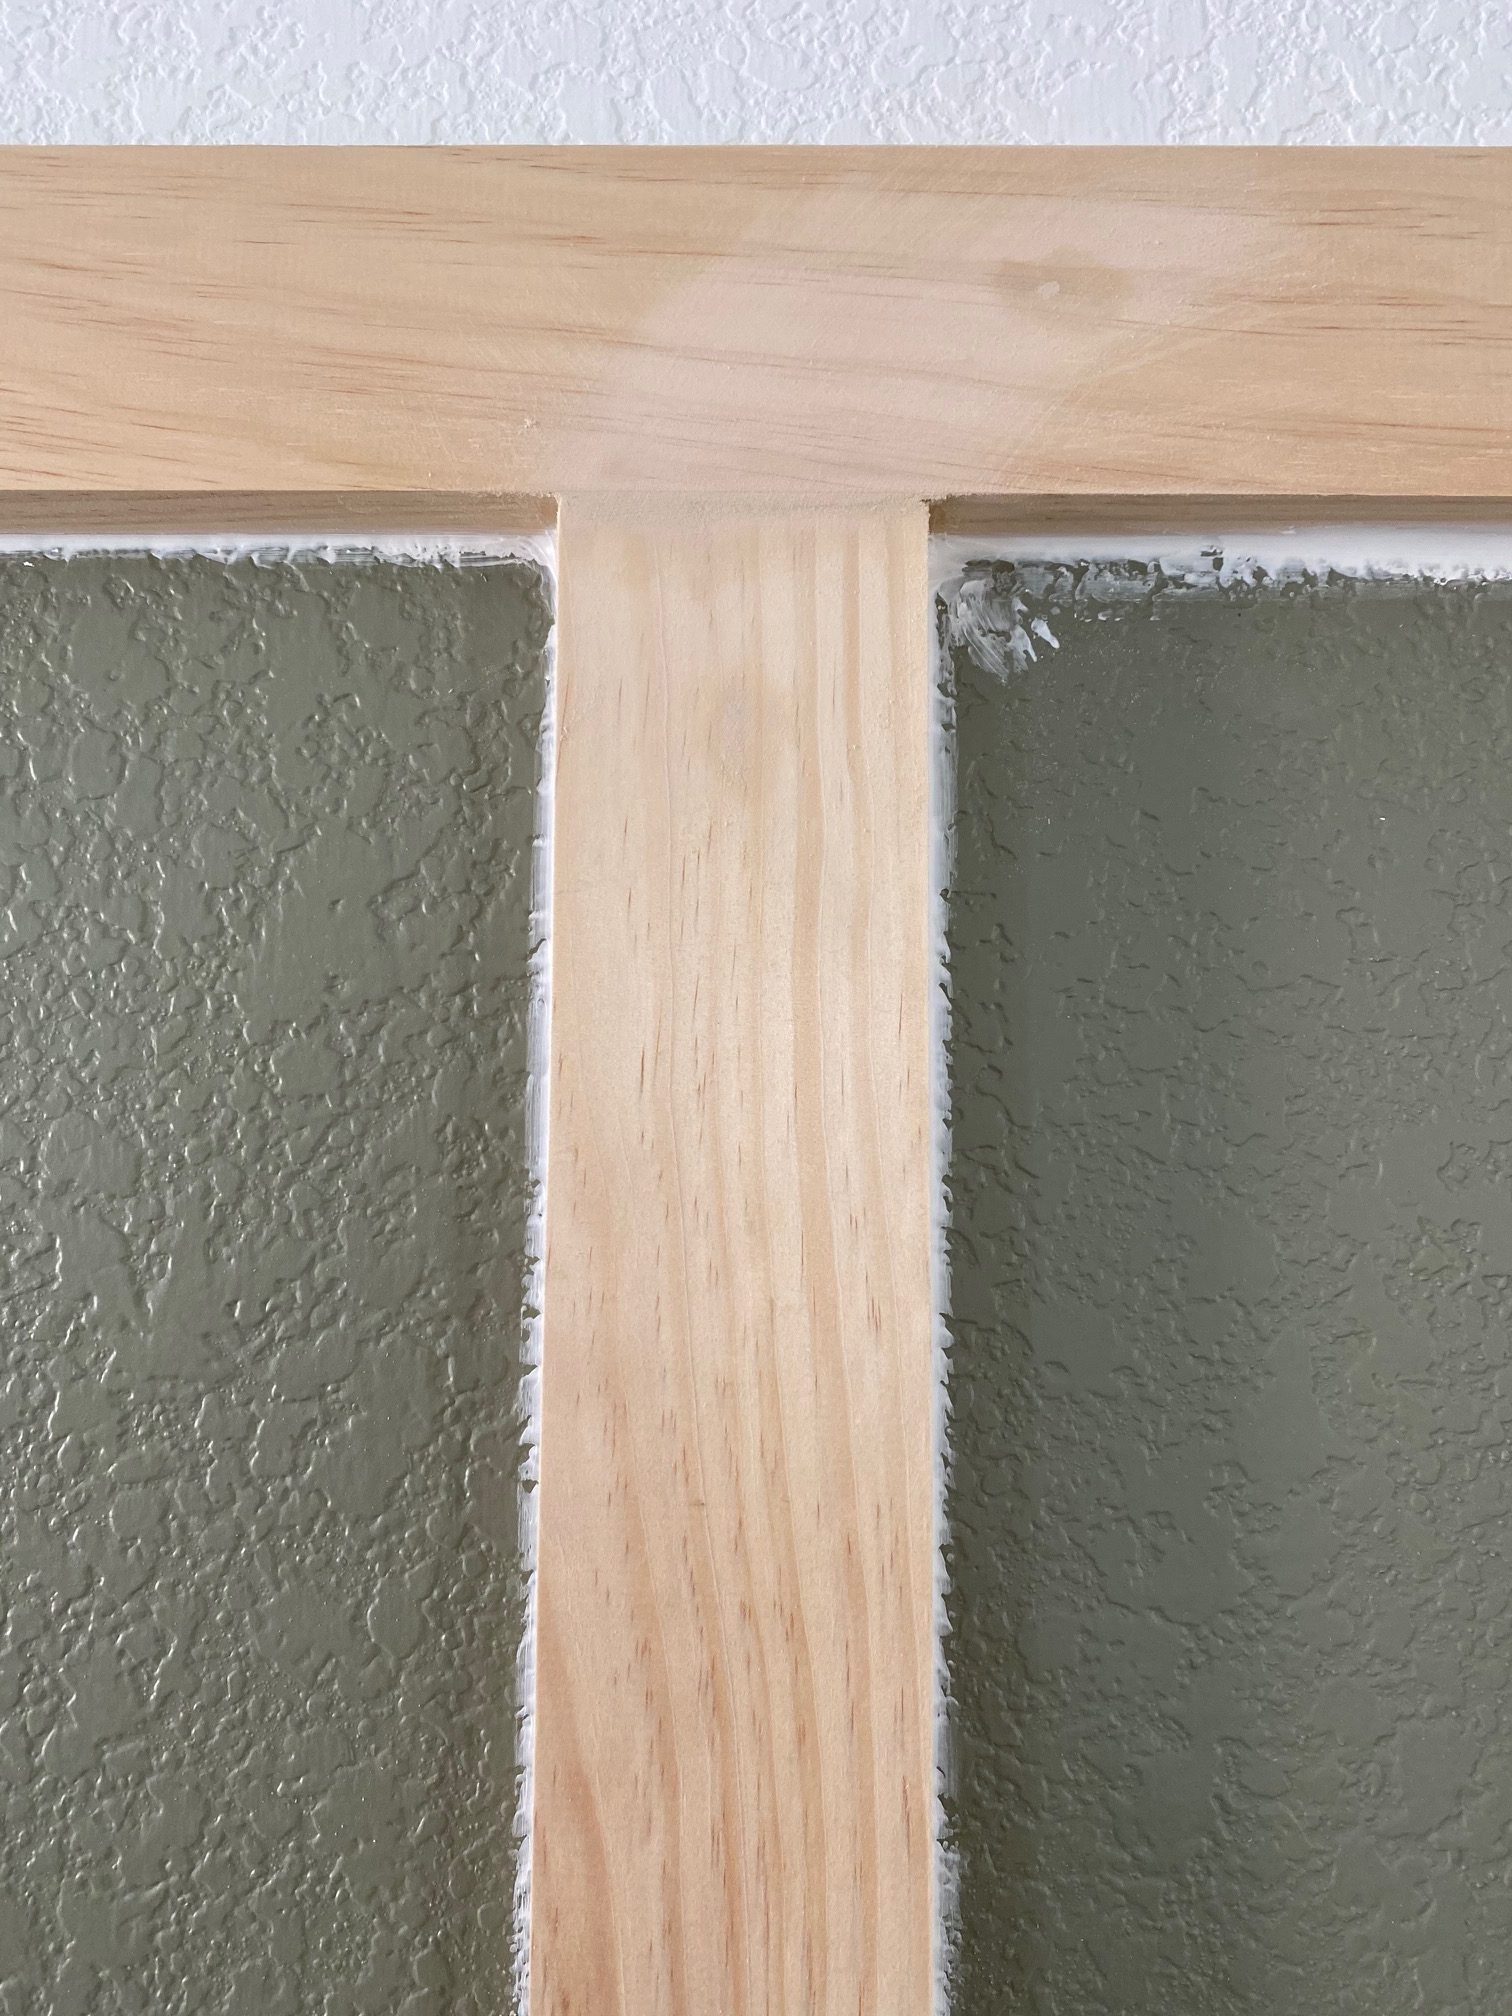 Board and Batten - A simple tutorial on how to DIY board and batten the easy way! Sanding down the spackle